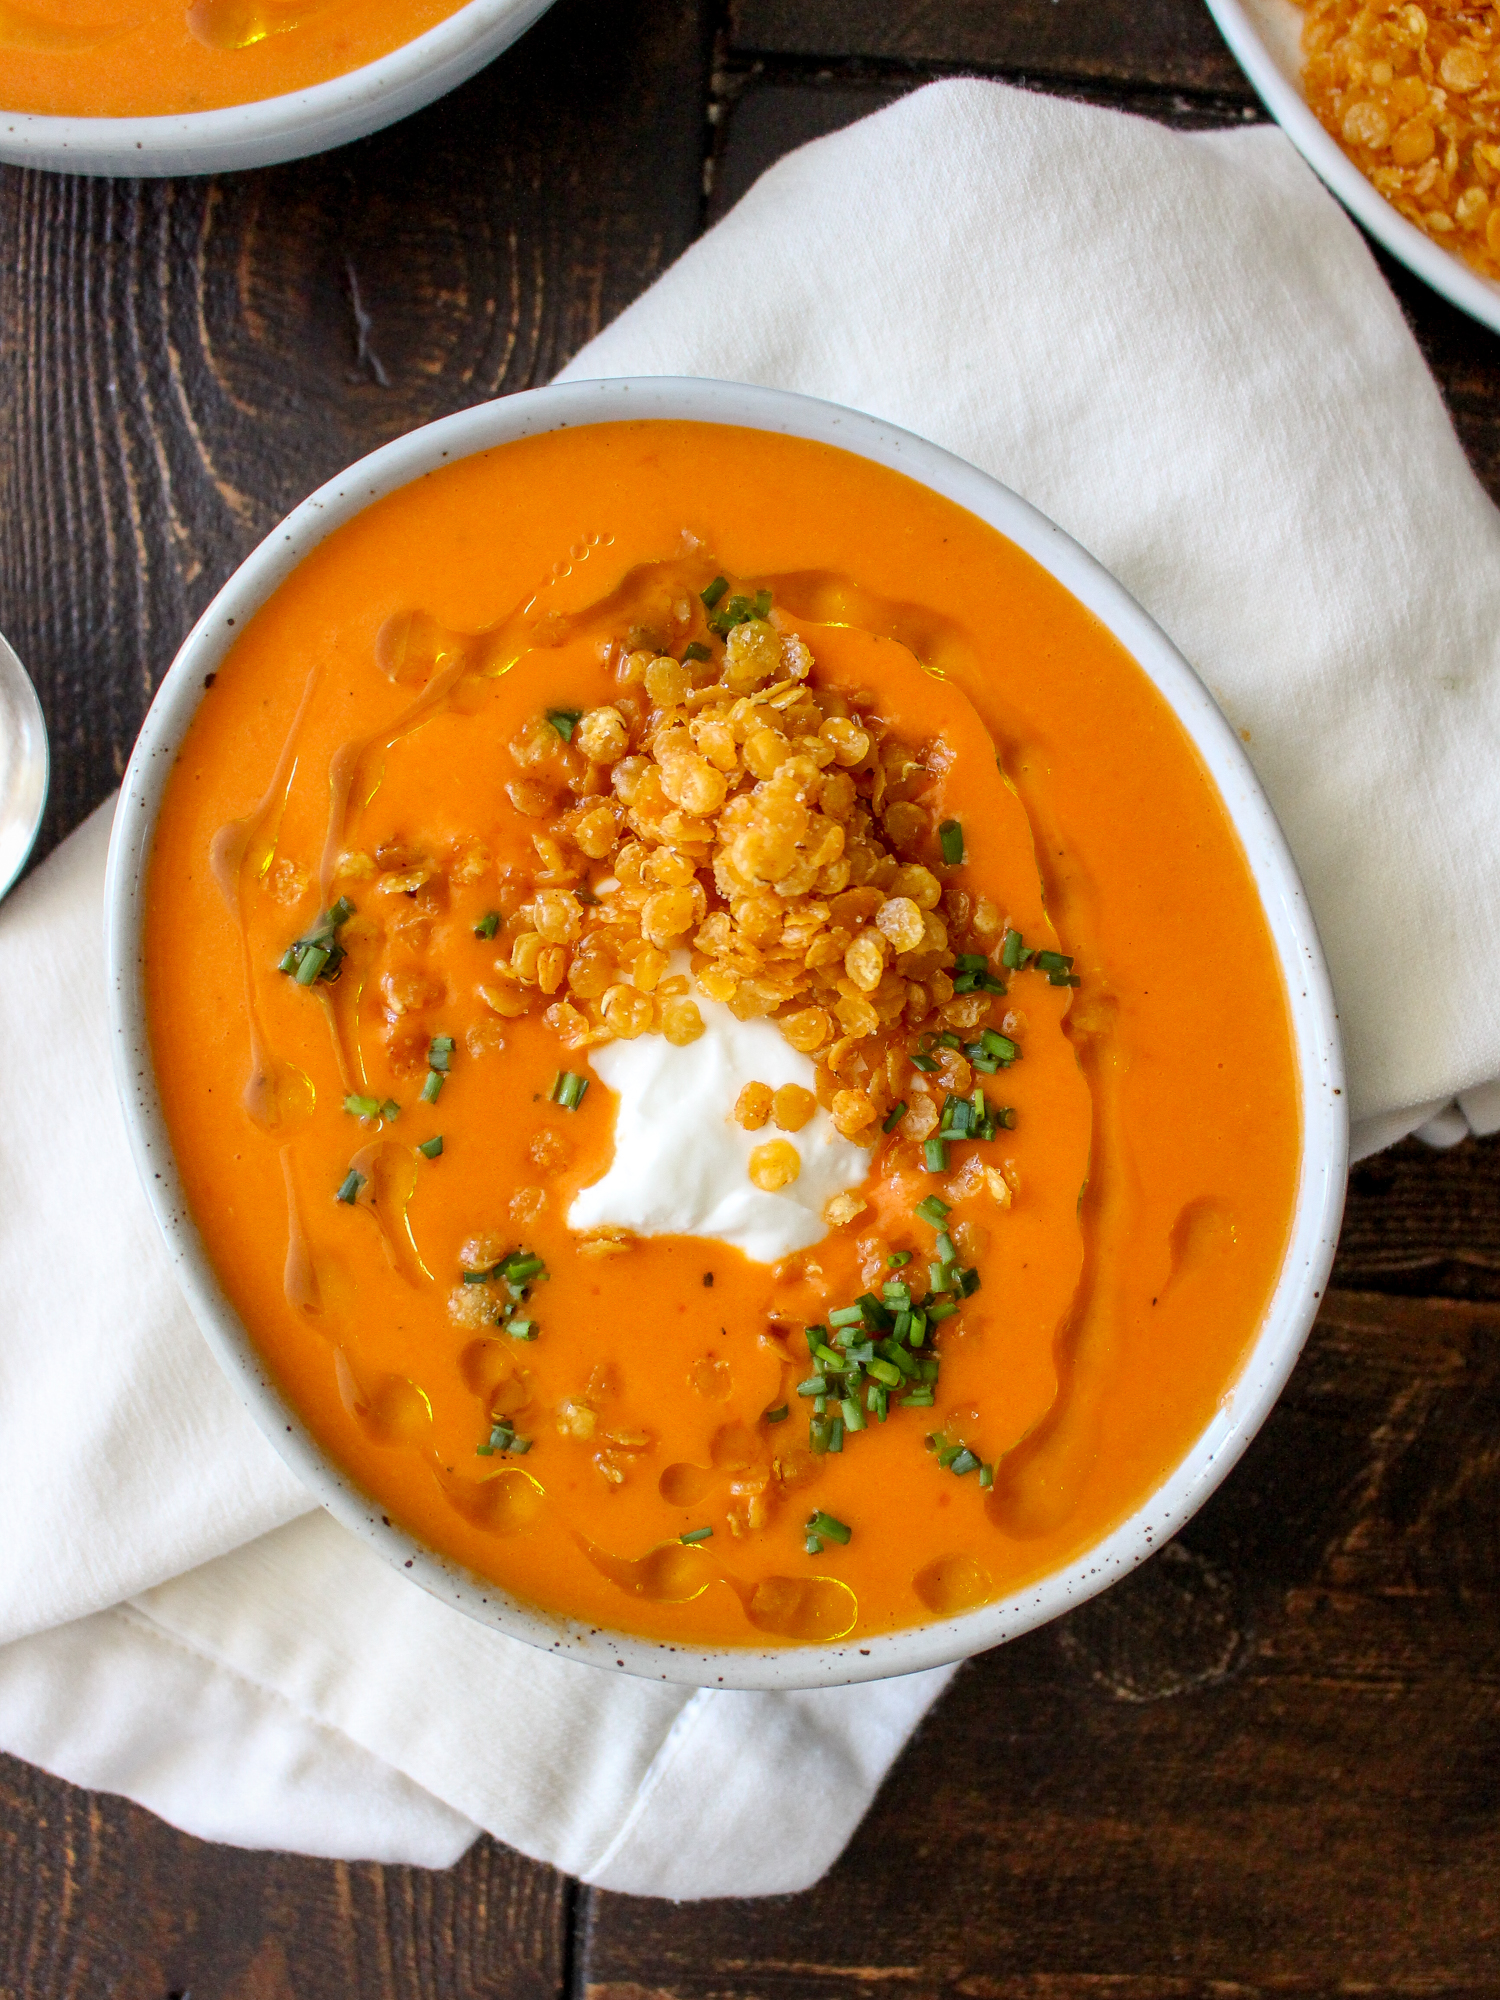 Creamy Roasted Red Pepper Soup with Crispy Fried Lentils